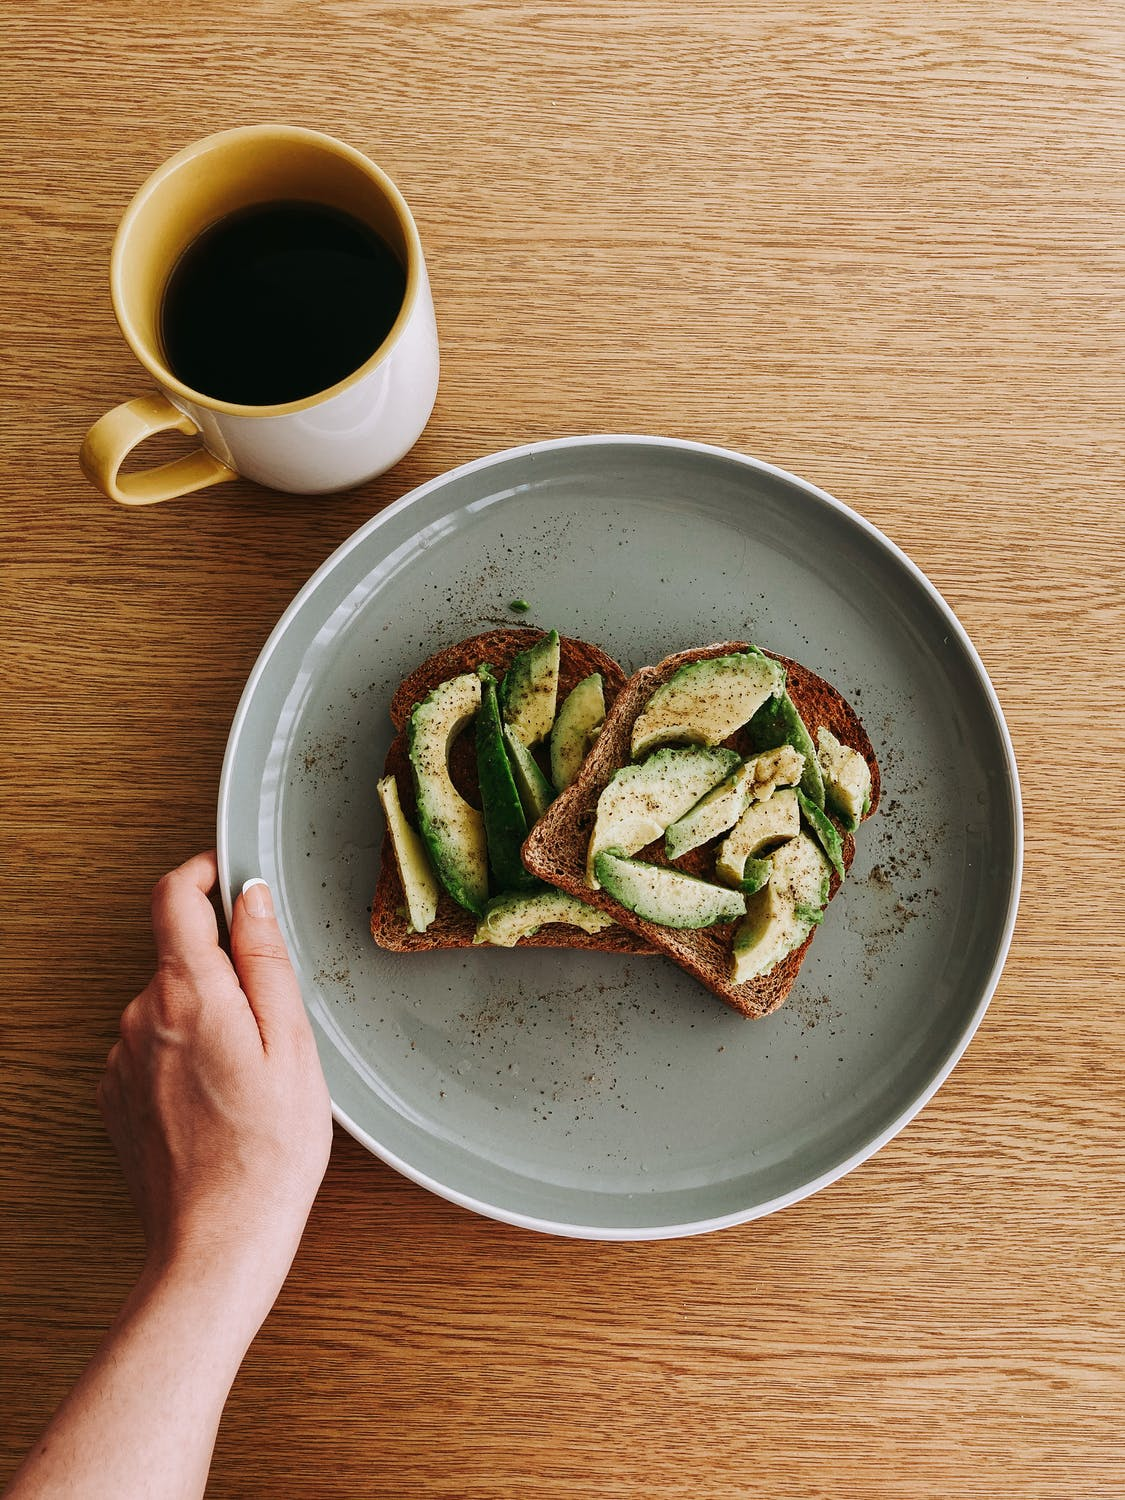 mug of black coffee and avocado on toast